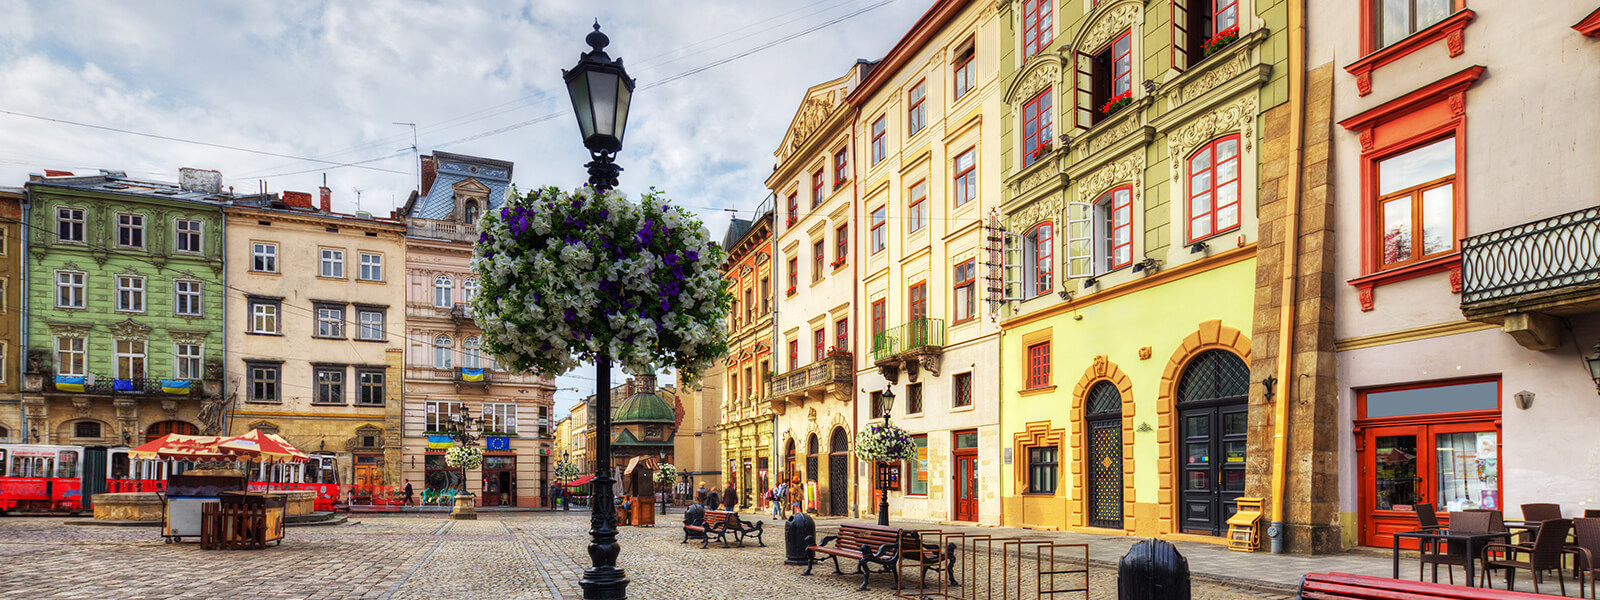 Old Lviv, Ukraine